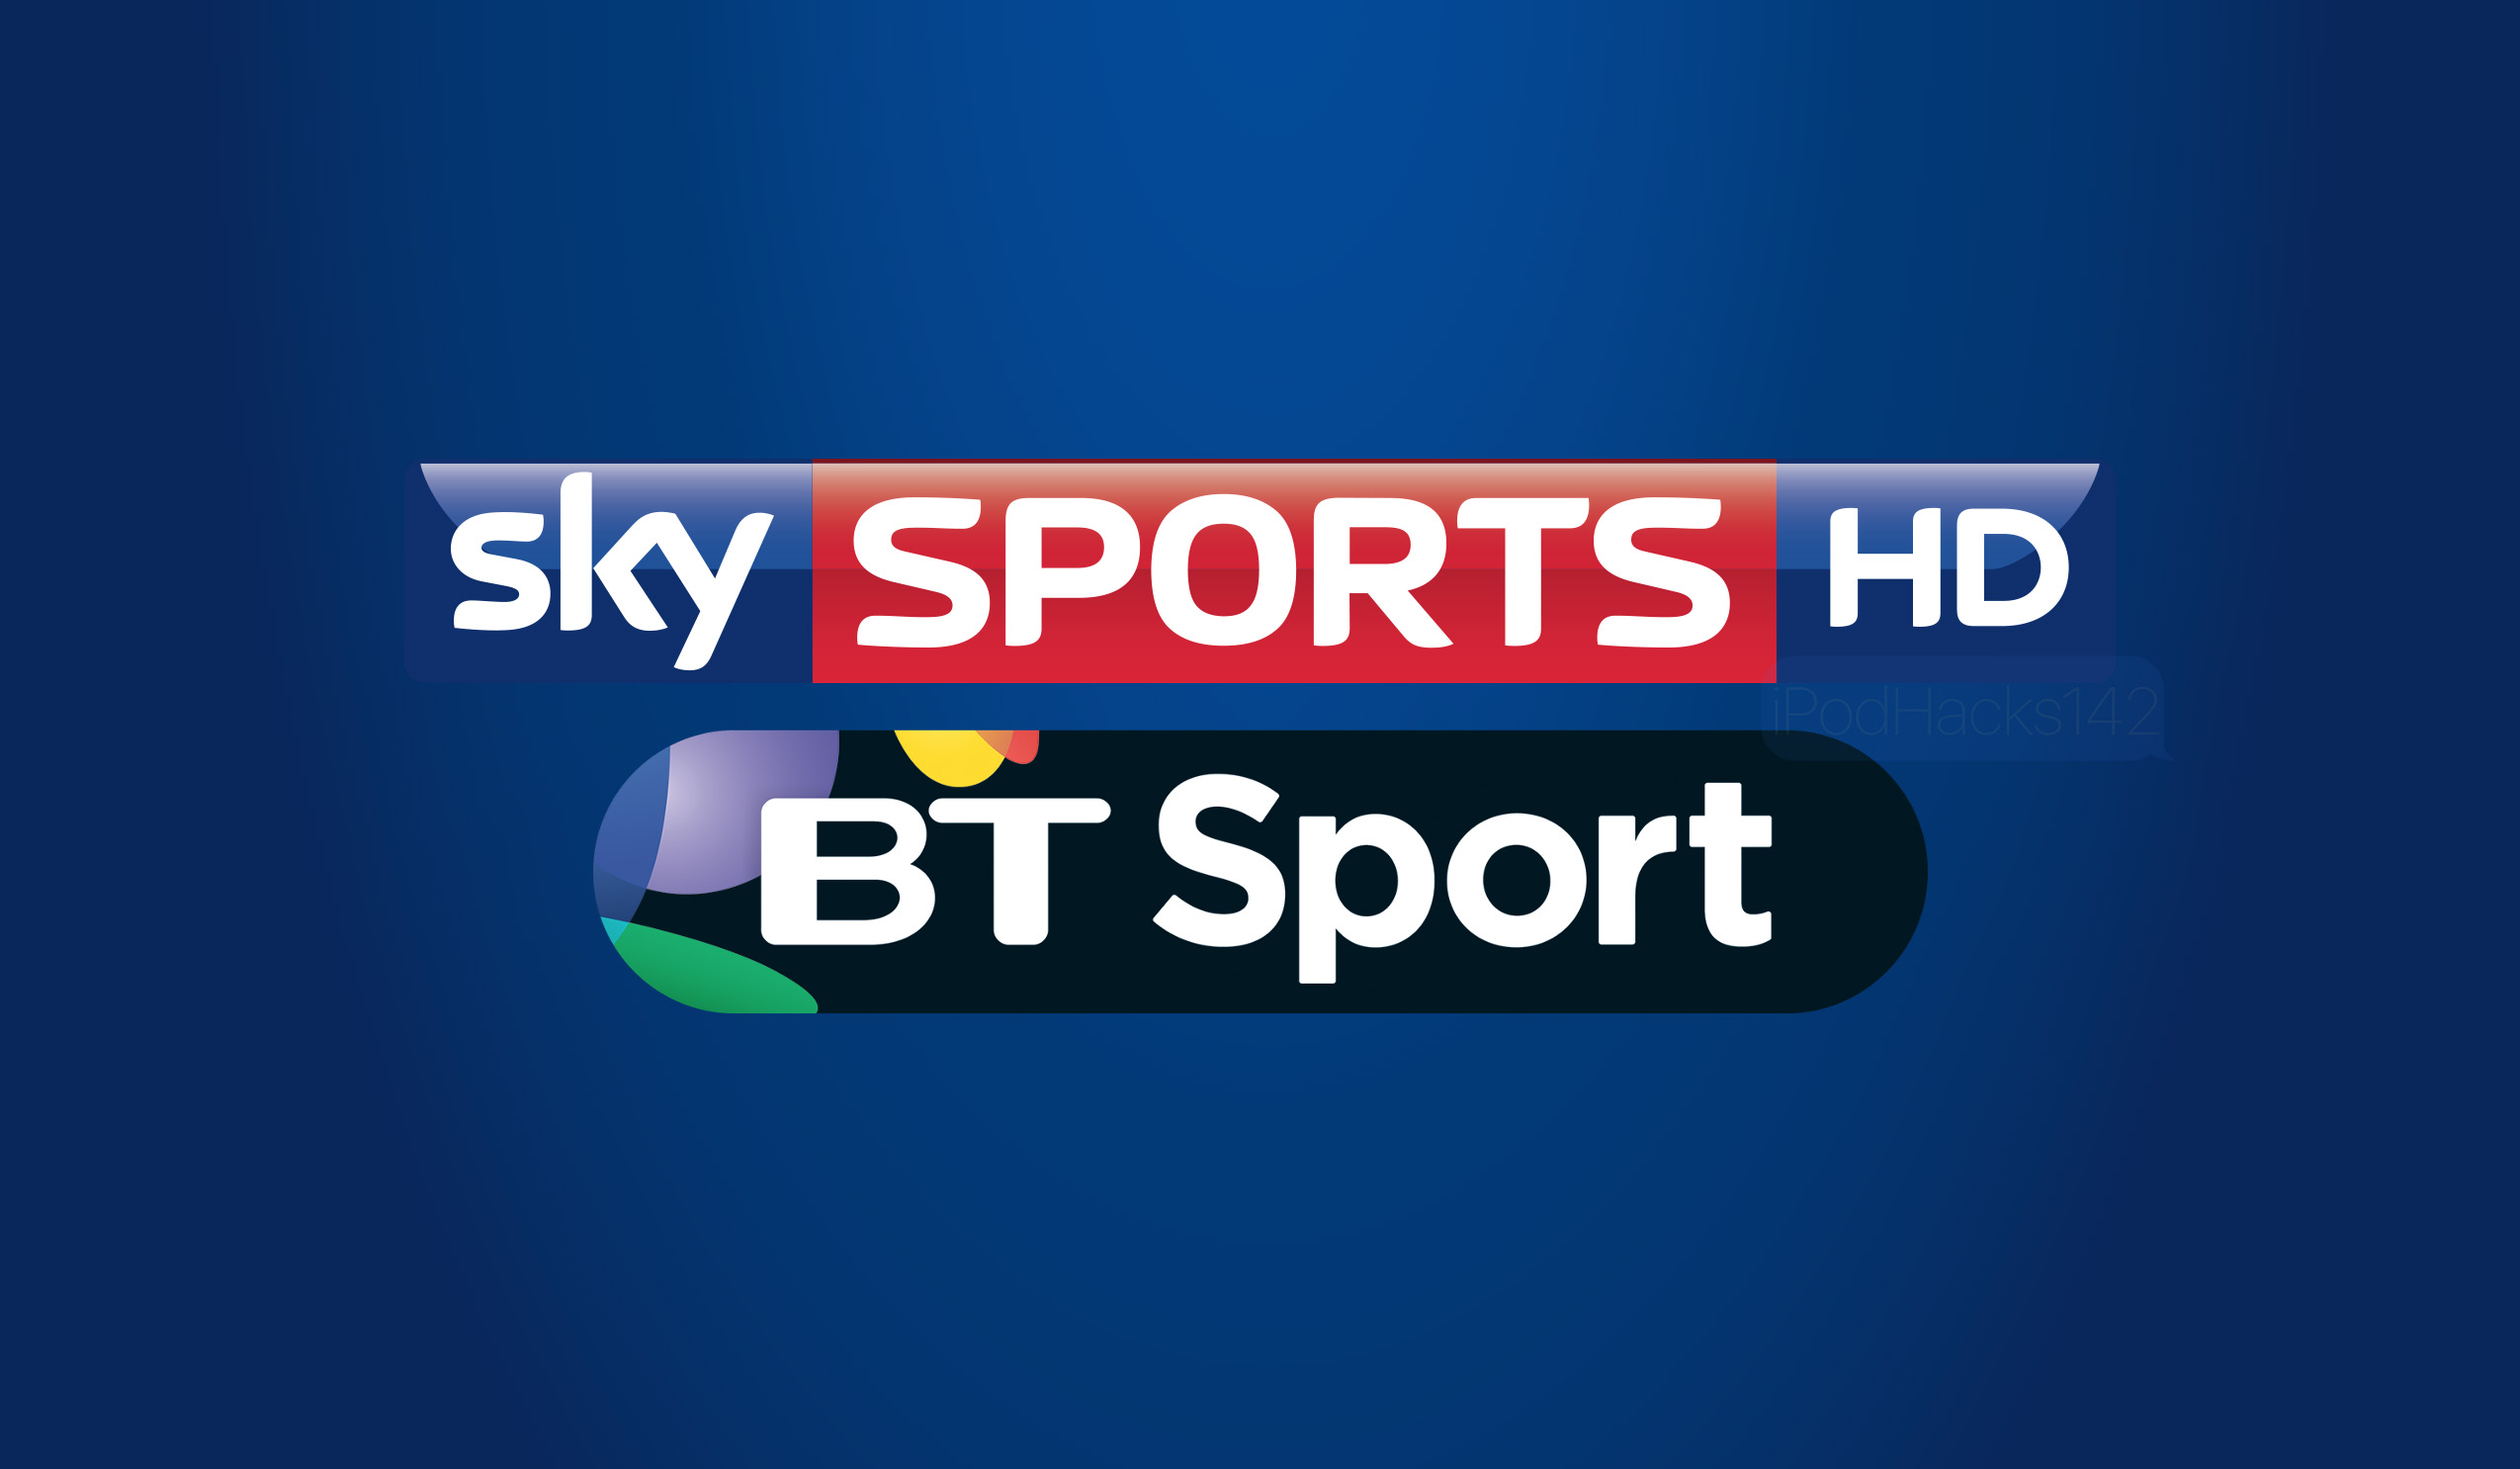 How to Watch Sky Sports, BT Sports, and More Live for Free